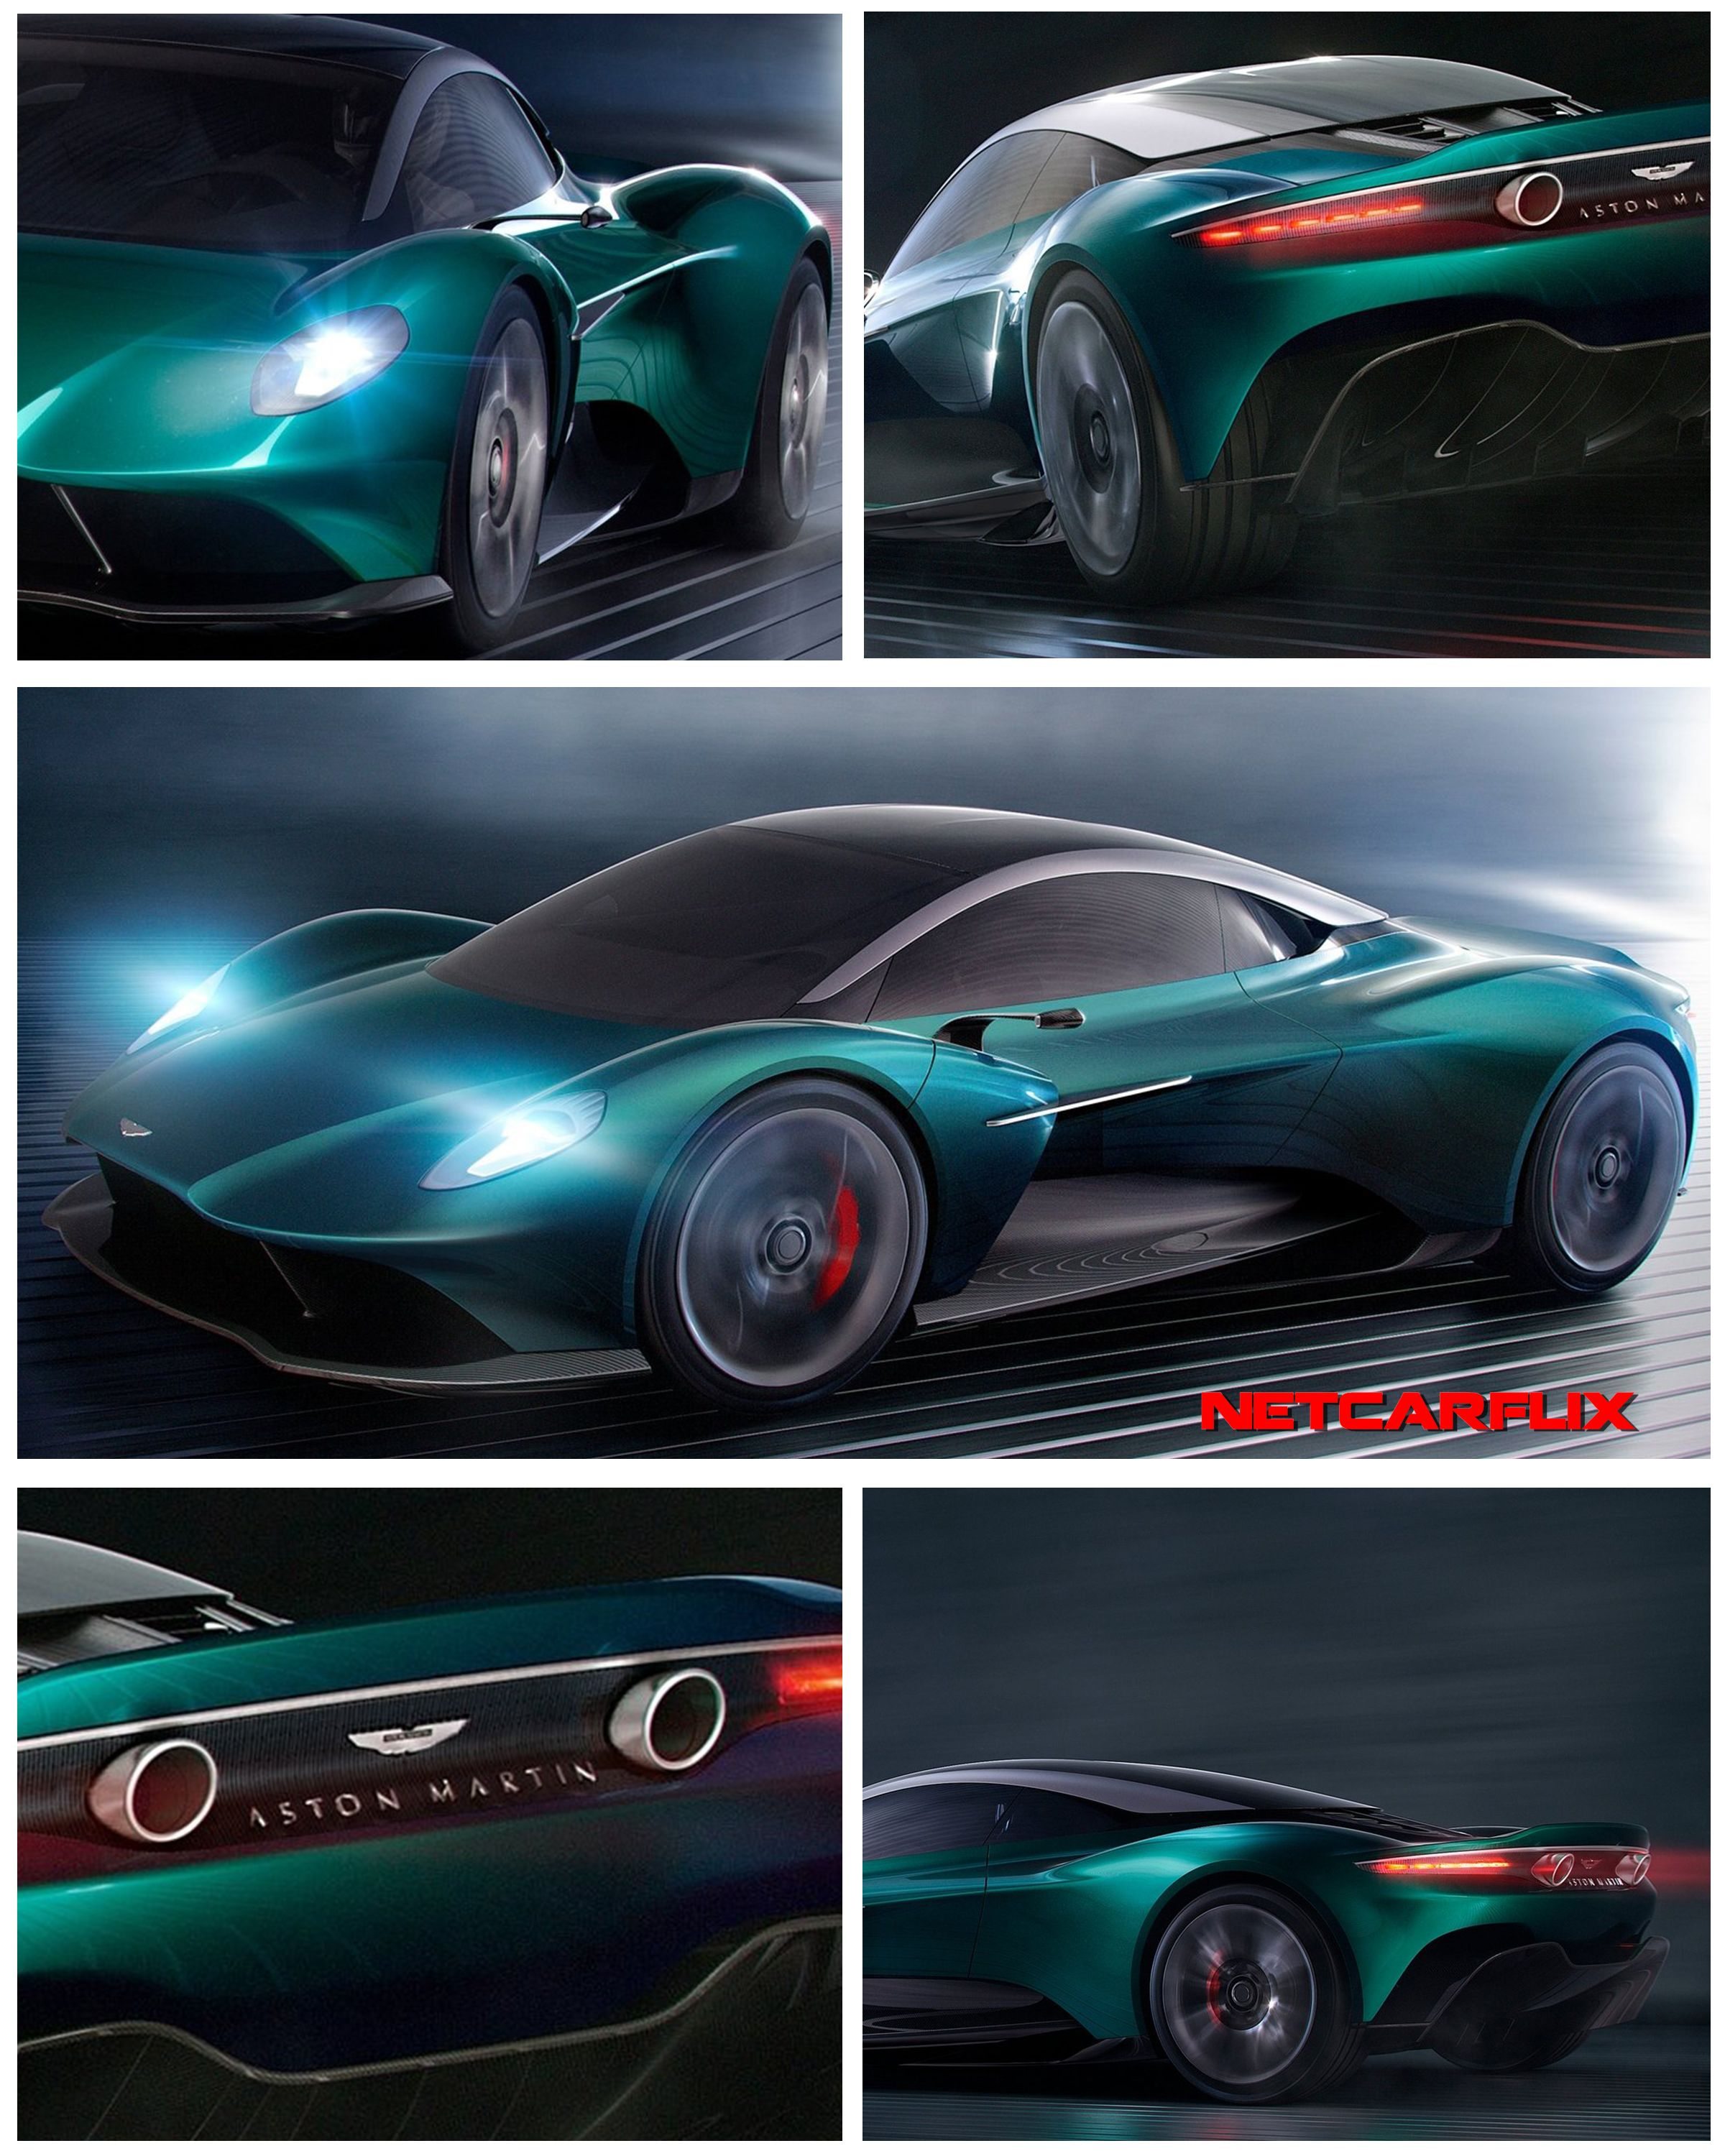 2019 Aston Martin Vanquish Vision Concept Hq Pictures Specs Information And Videos Dailyrevs Aston Martin Vanquish Aston Martin Vanquish